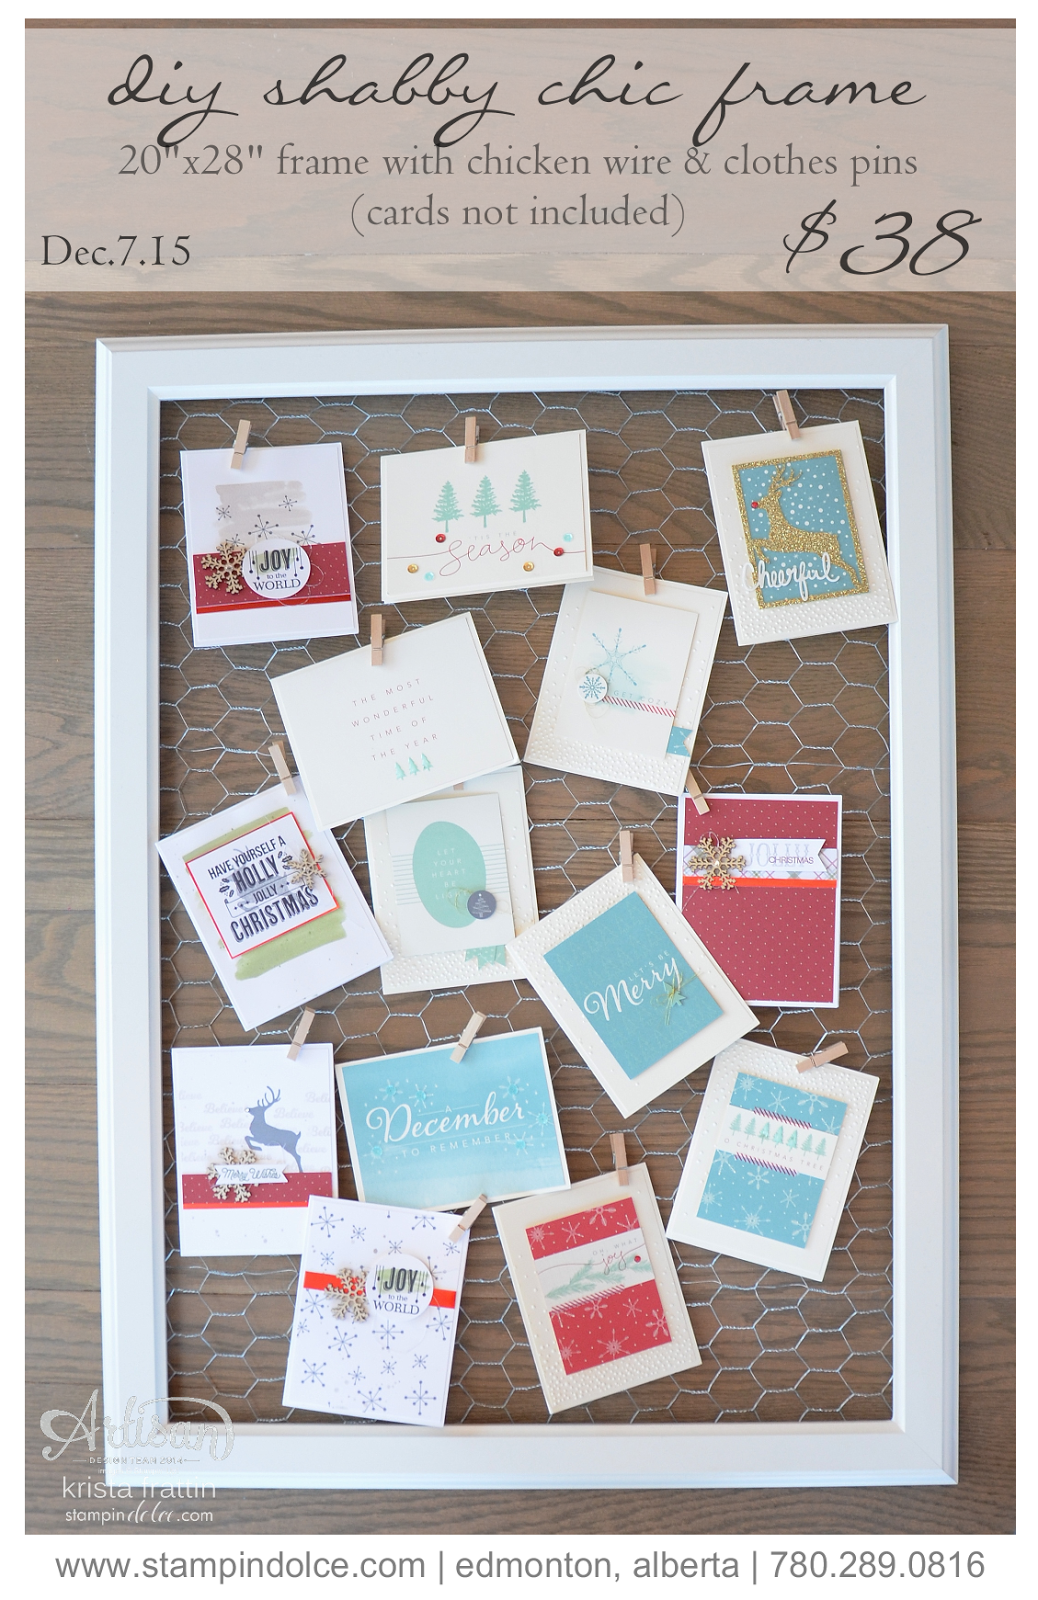 Stampin dolce 12 days of christams day 5 diy shabby chic frame i am offering a class in edmonton on december 7 2015 at 700pm come create this frame for 38 solutioingenieria Images